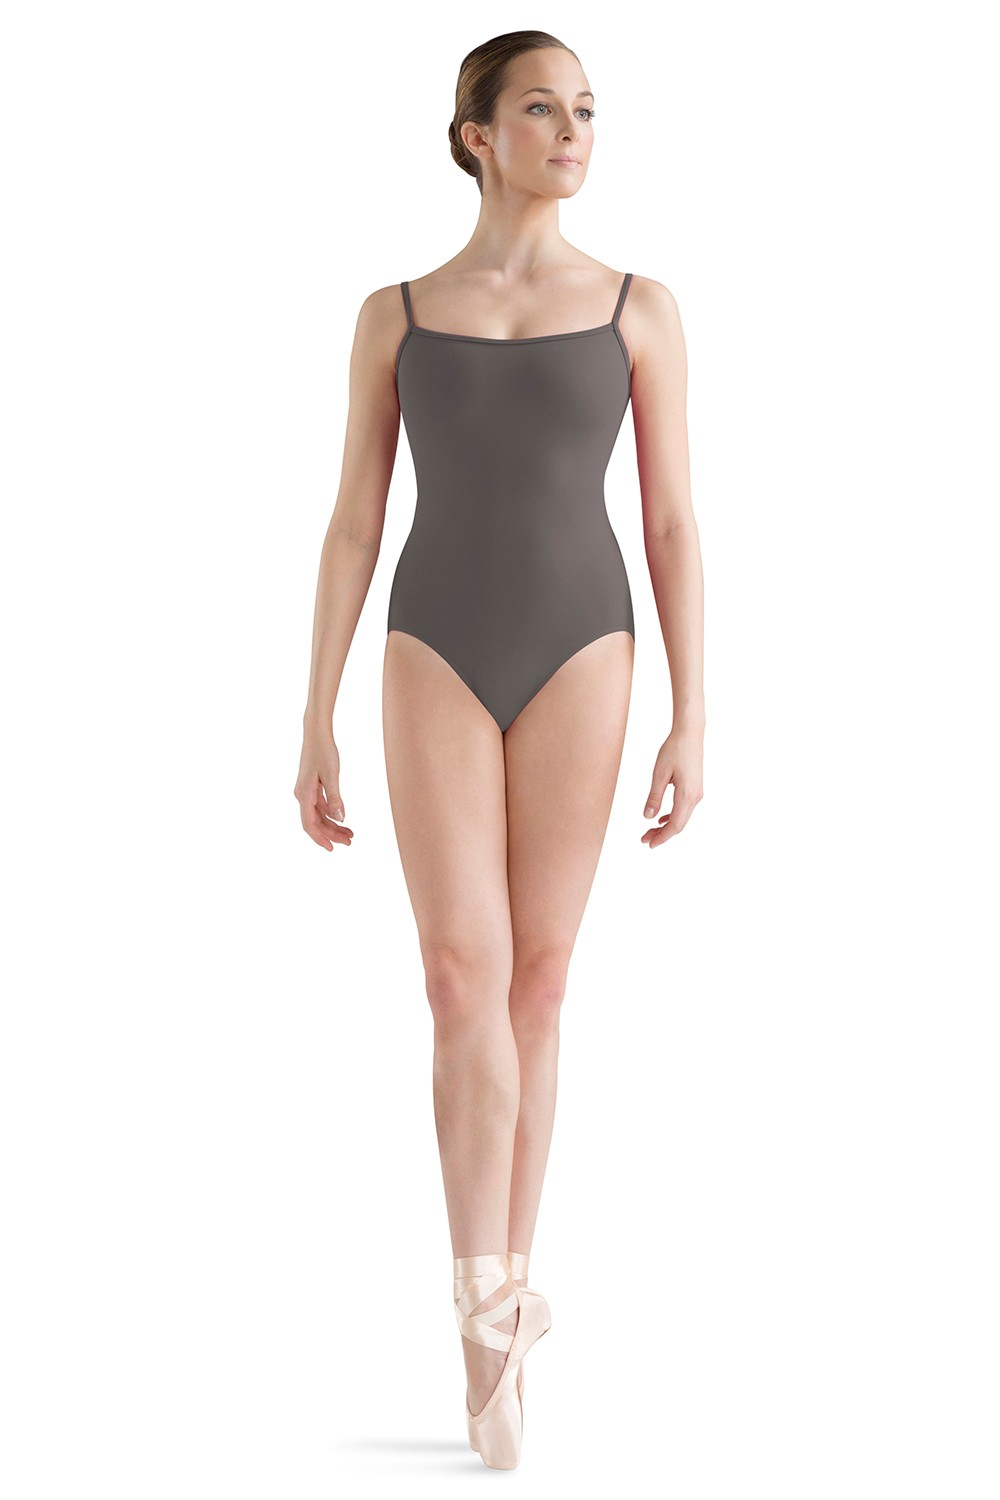 Cami Leo Knot Detail On  Back Women's Dance Leotards